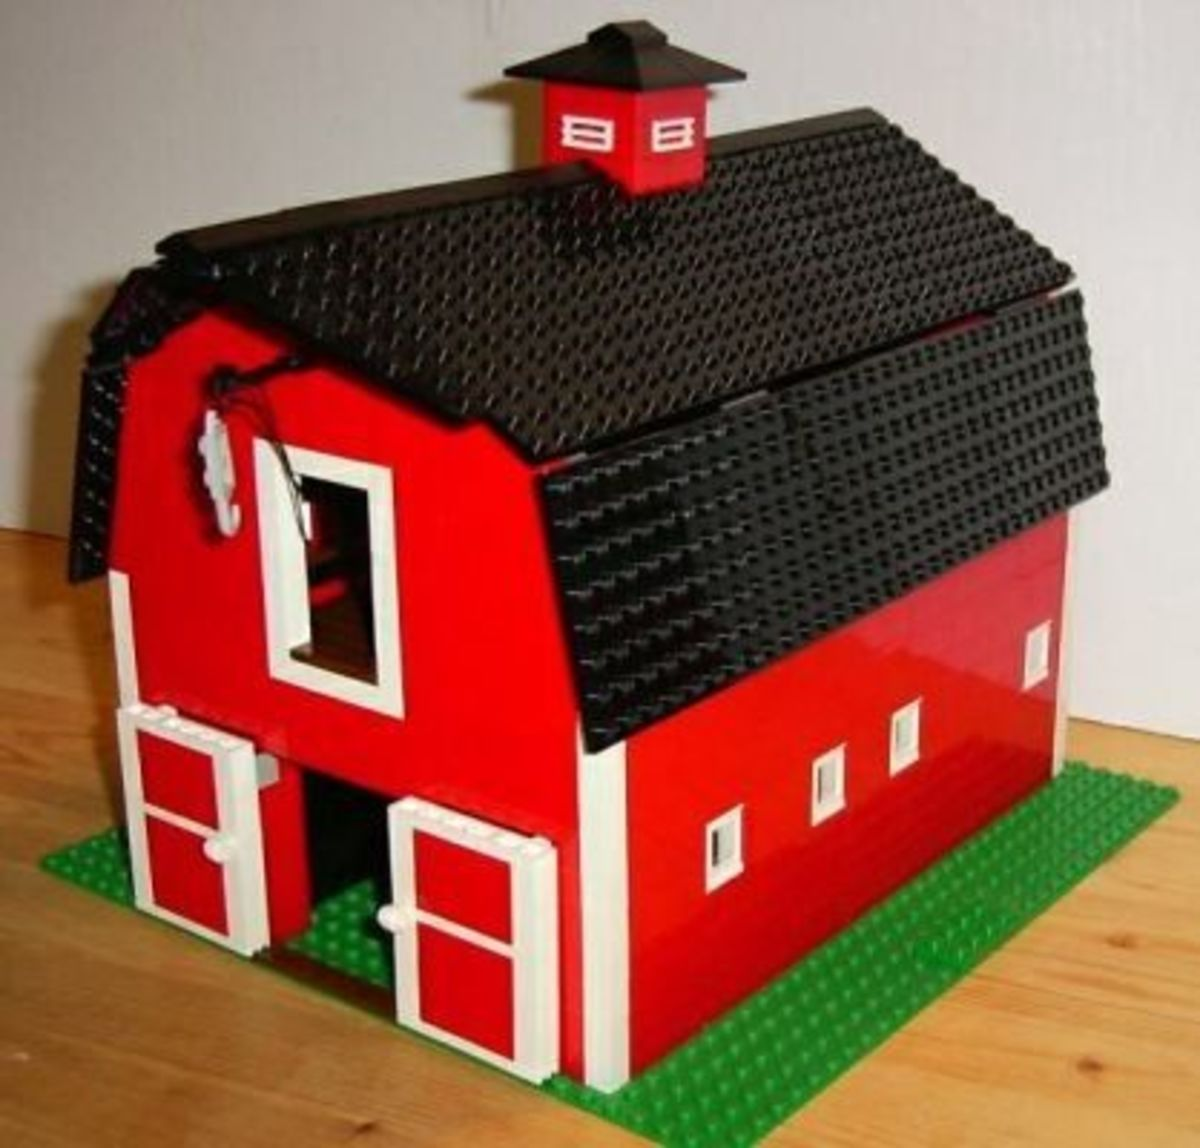 Classic red barn to go with the farmhouse, sliding doors operate, interior stalls for livestock, upper floor hay and grain storage with crane to loading door.